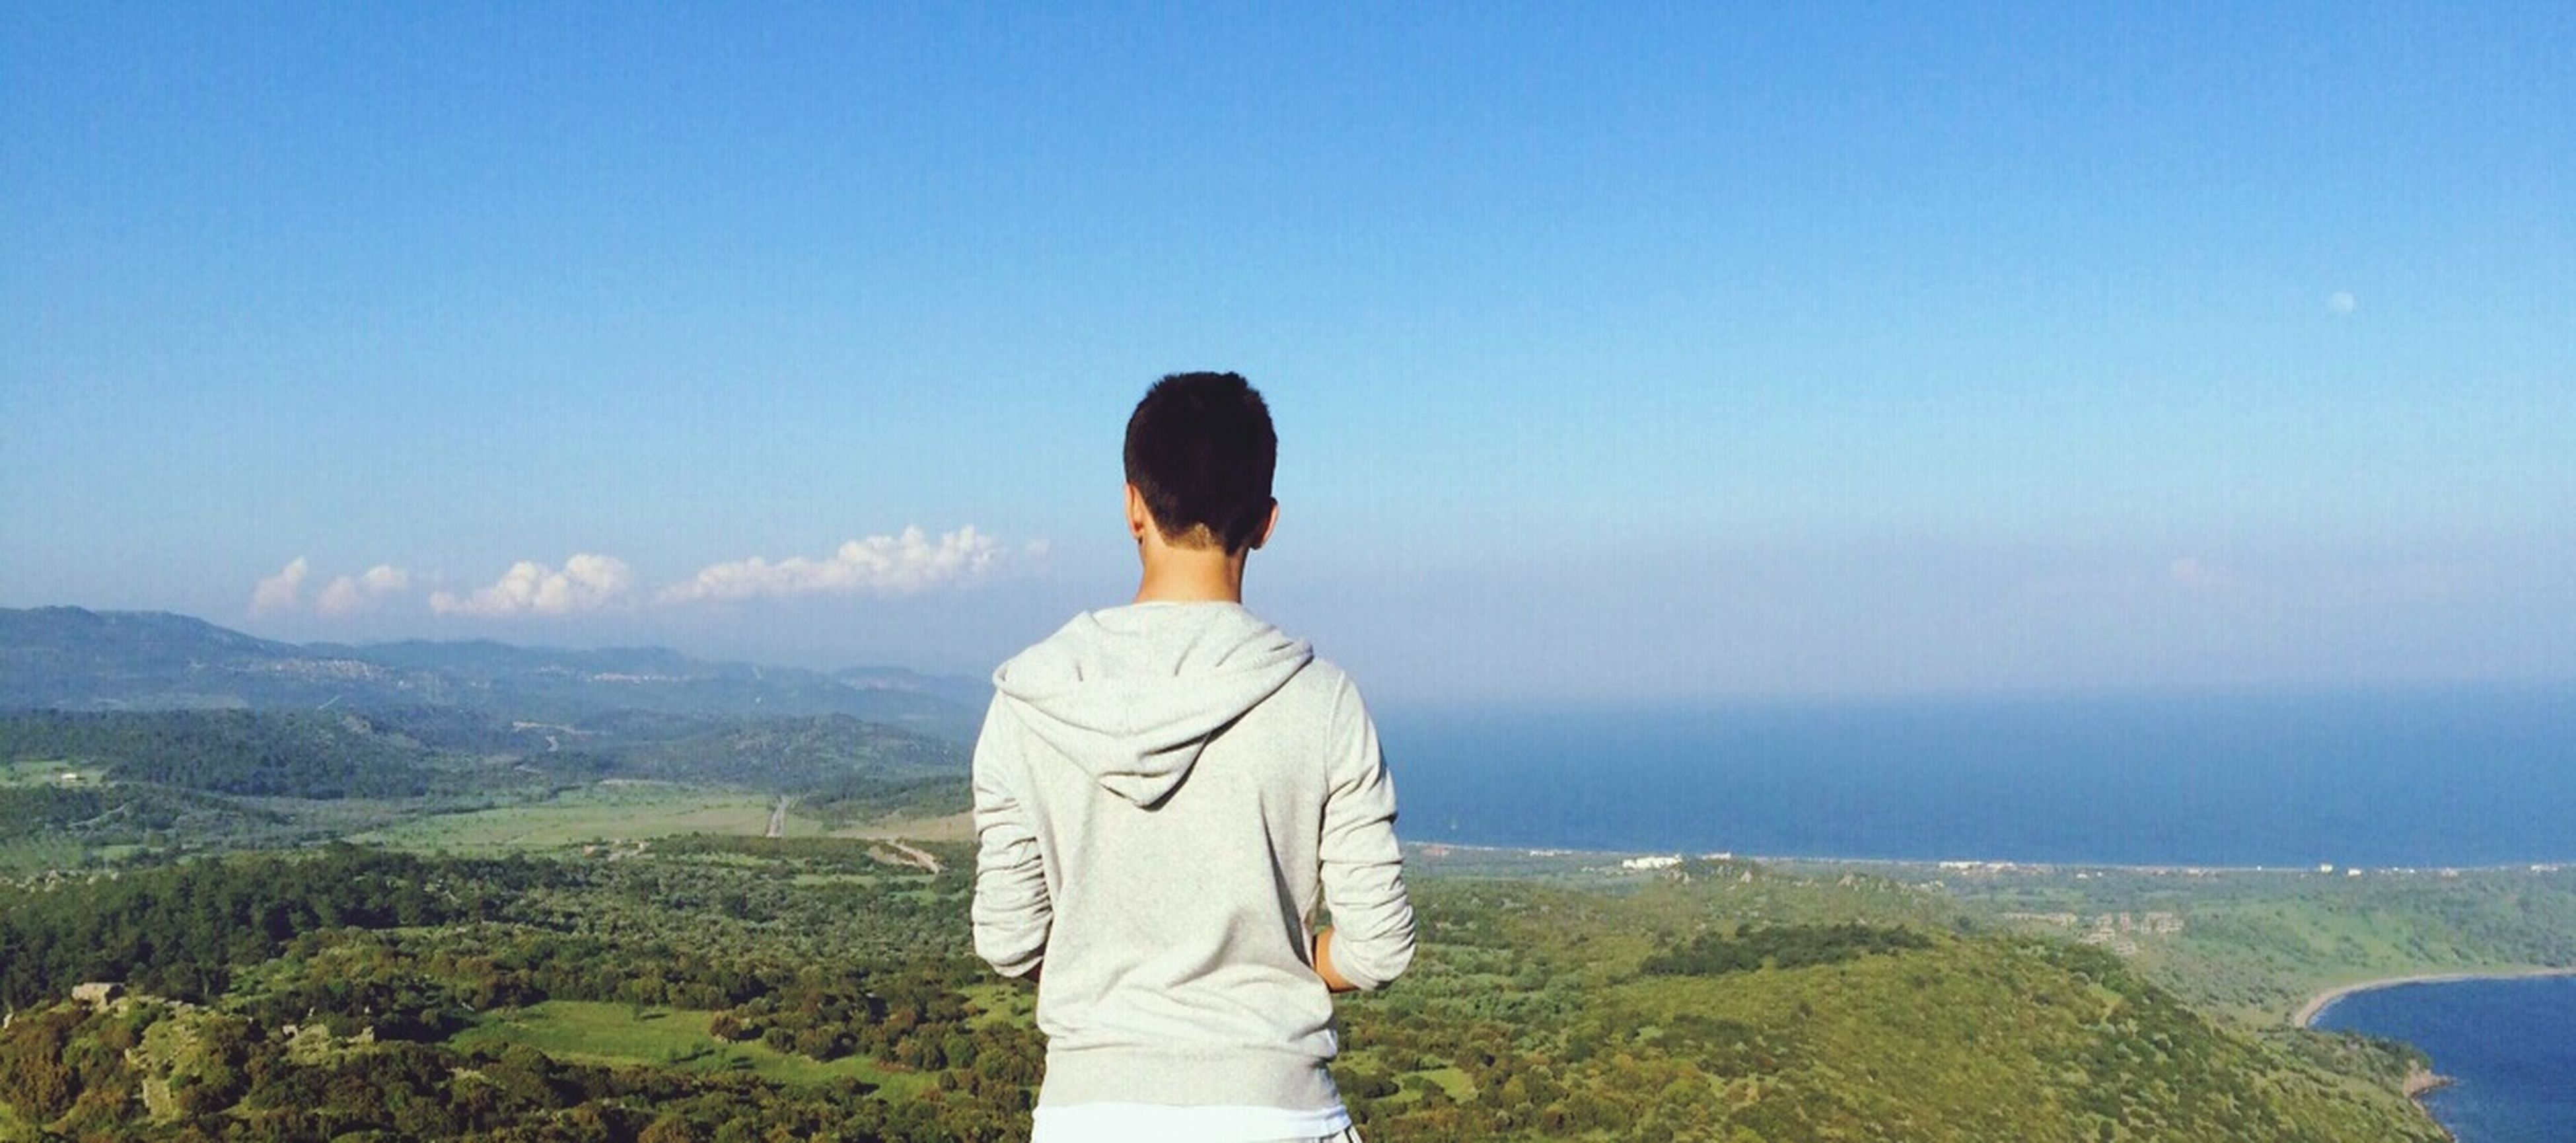 standing, rear view, tranquil scene, tranquility, lifestyles, scenics, beauty in nature, sky, leisure activity, three quarter length, nature, blue, casual clothing, waist up, mountain, getting away from it all, looking at view, landscape